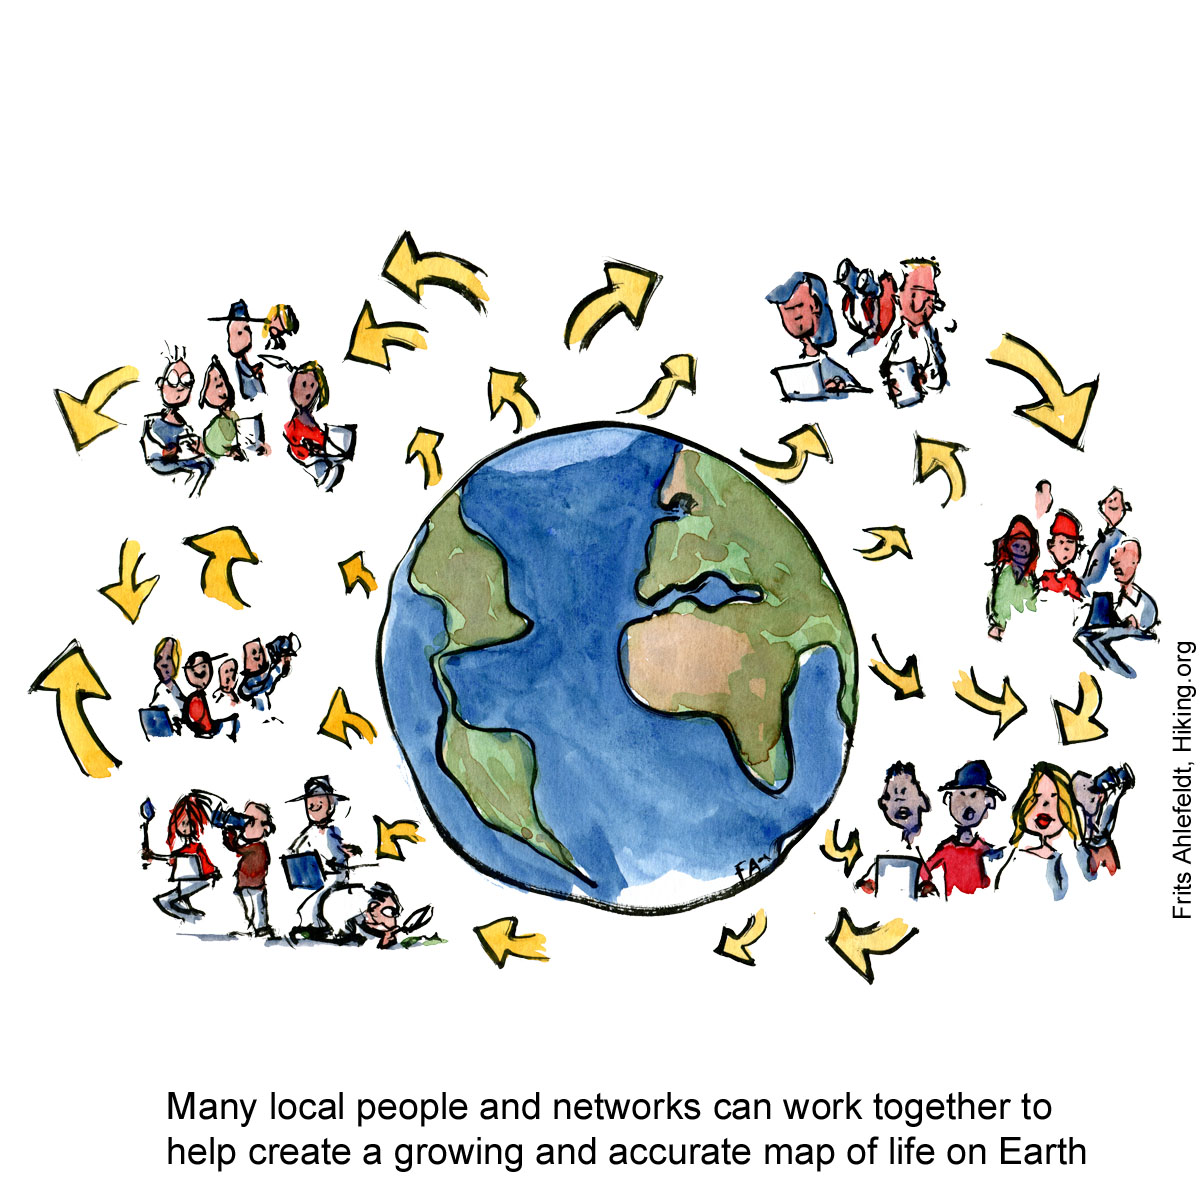 Drawing of planet Earth with people working in groups around it to innovate, collect and share understandings. Illustration by Frits Ahlefeldt